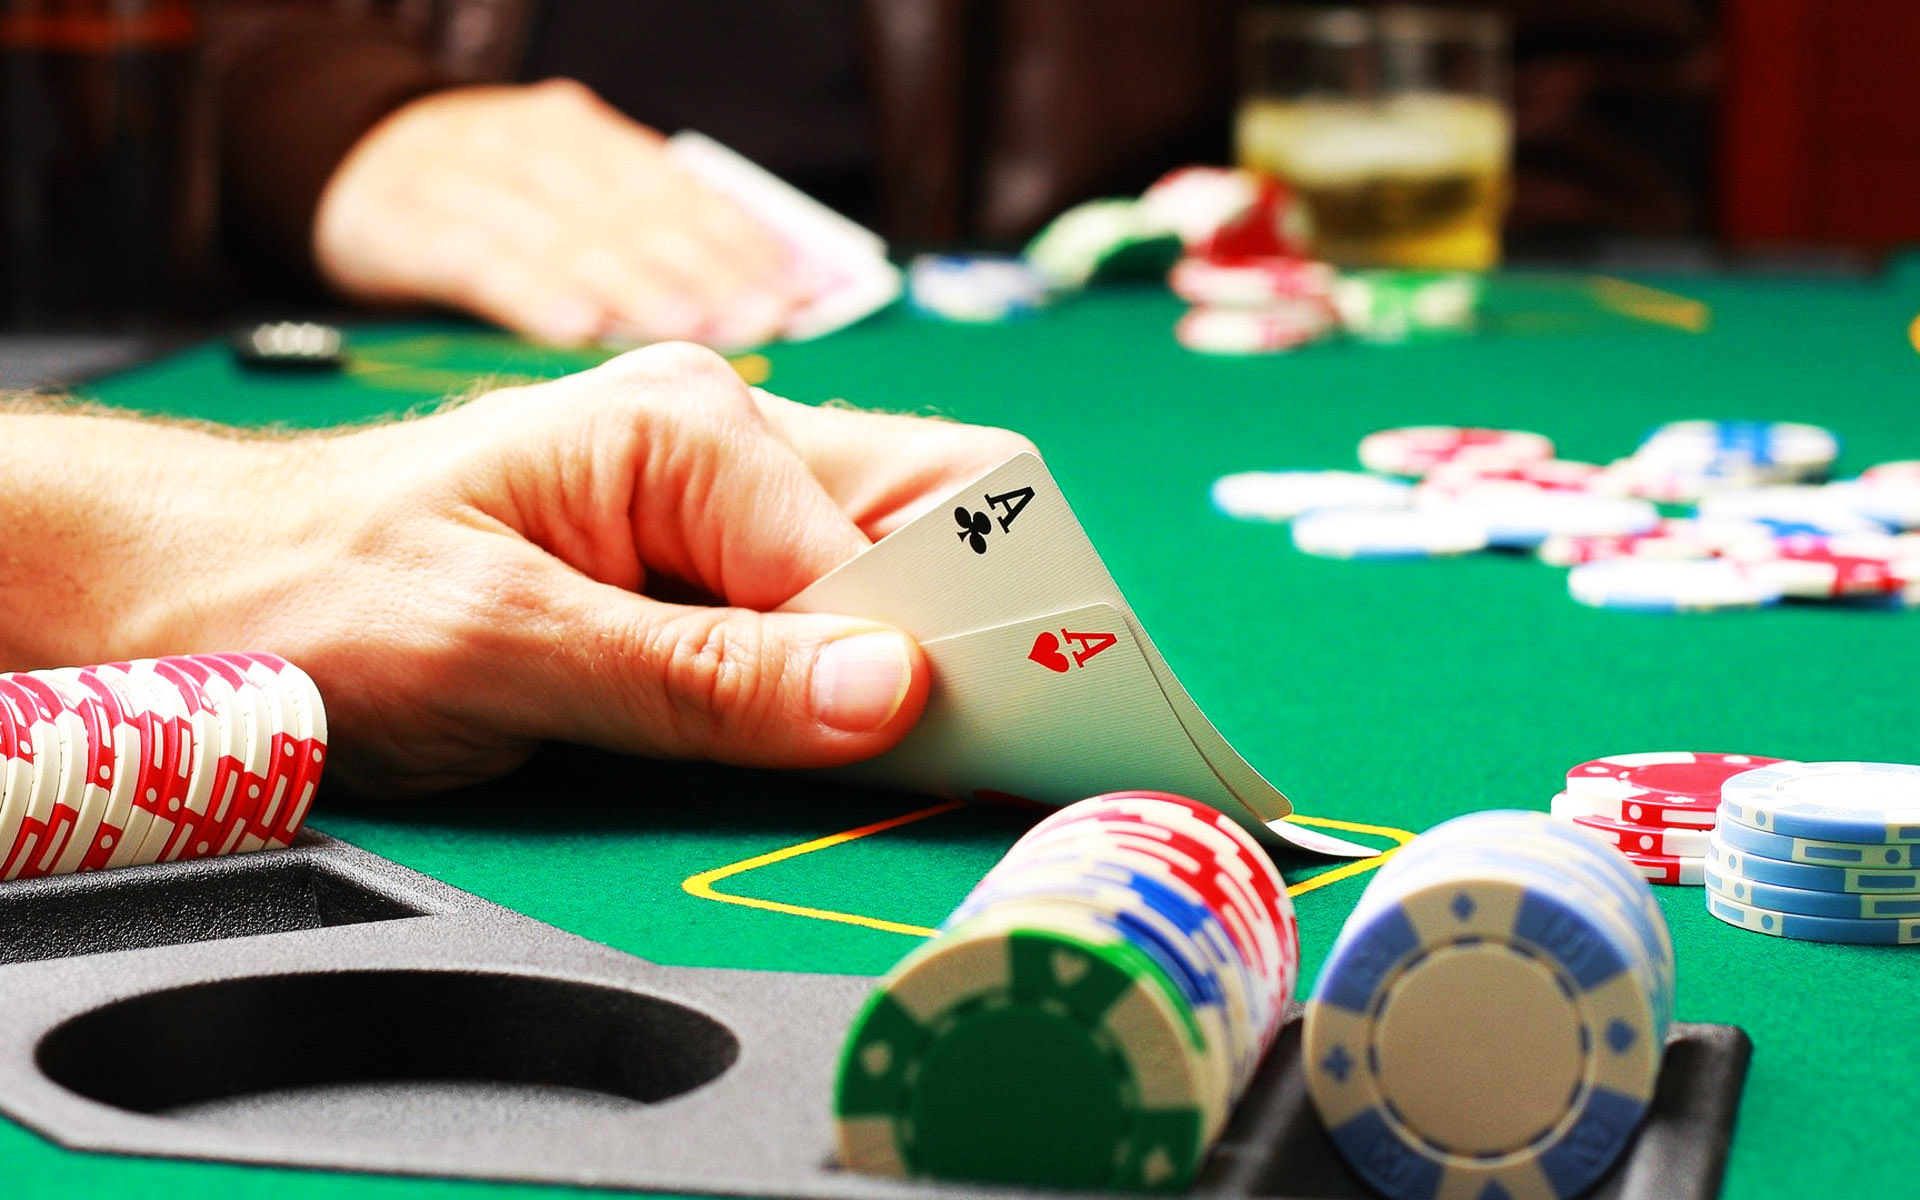 Eager About Casino Reasons Why It's Time To Stop